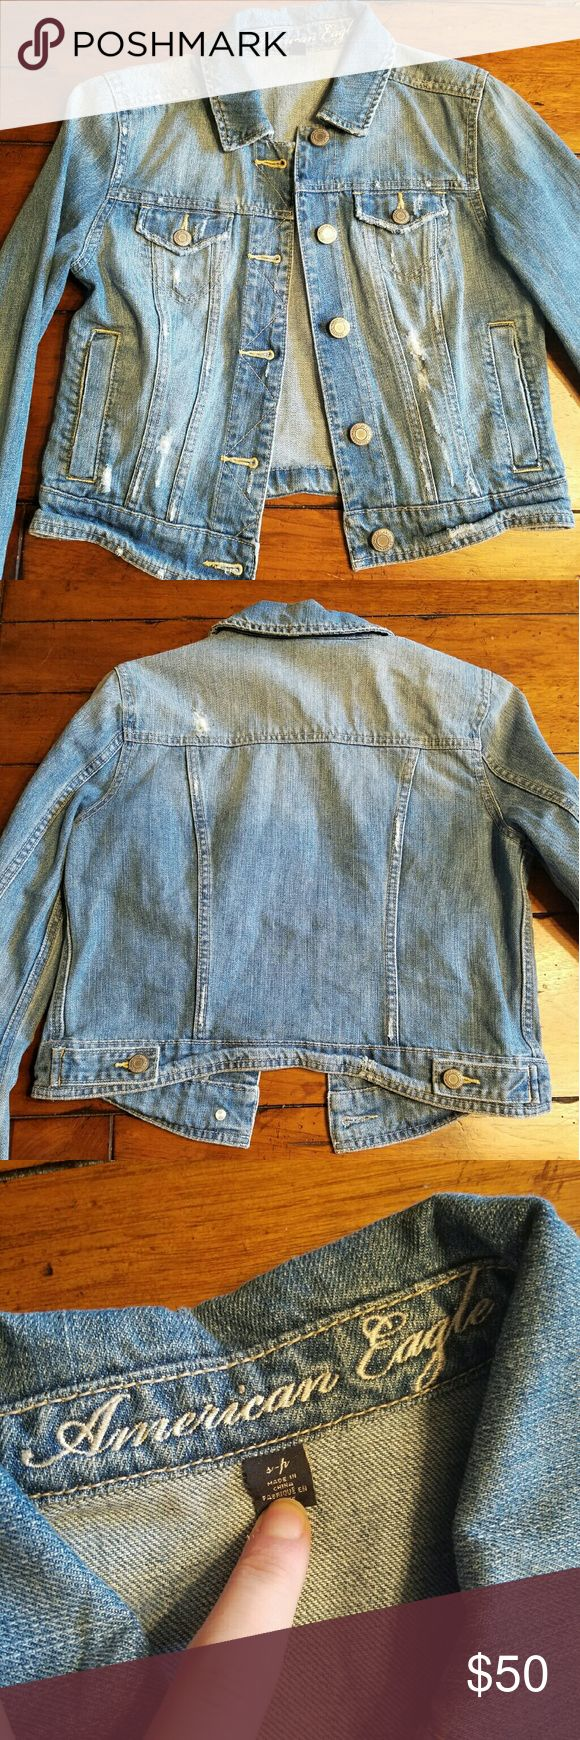 V-day Sale! Host Pick! American Eagle Jacket Host Pick! Back to Basics! :) NWOT Distressed AE jacket with silver buttons & four useable pockets. Never worn!    Entire closet is  bogo 50% or use the offer button! :) American Eagle Outfitters Jackets & Coats Jean Jackets